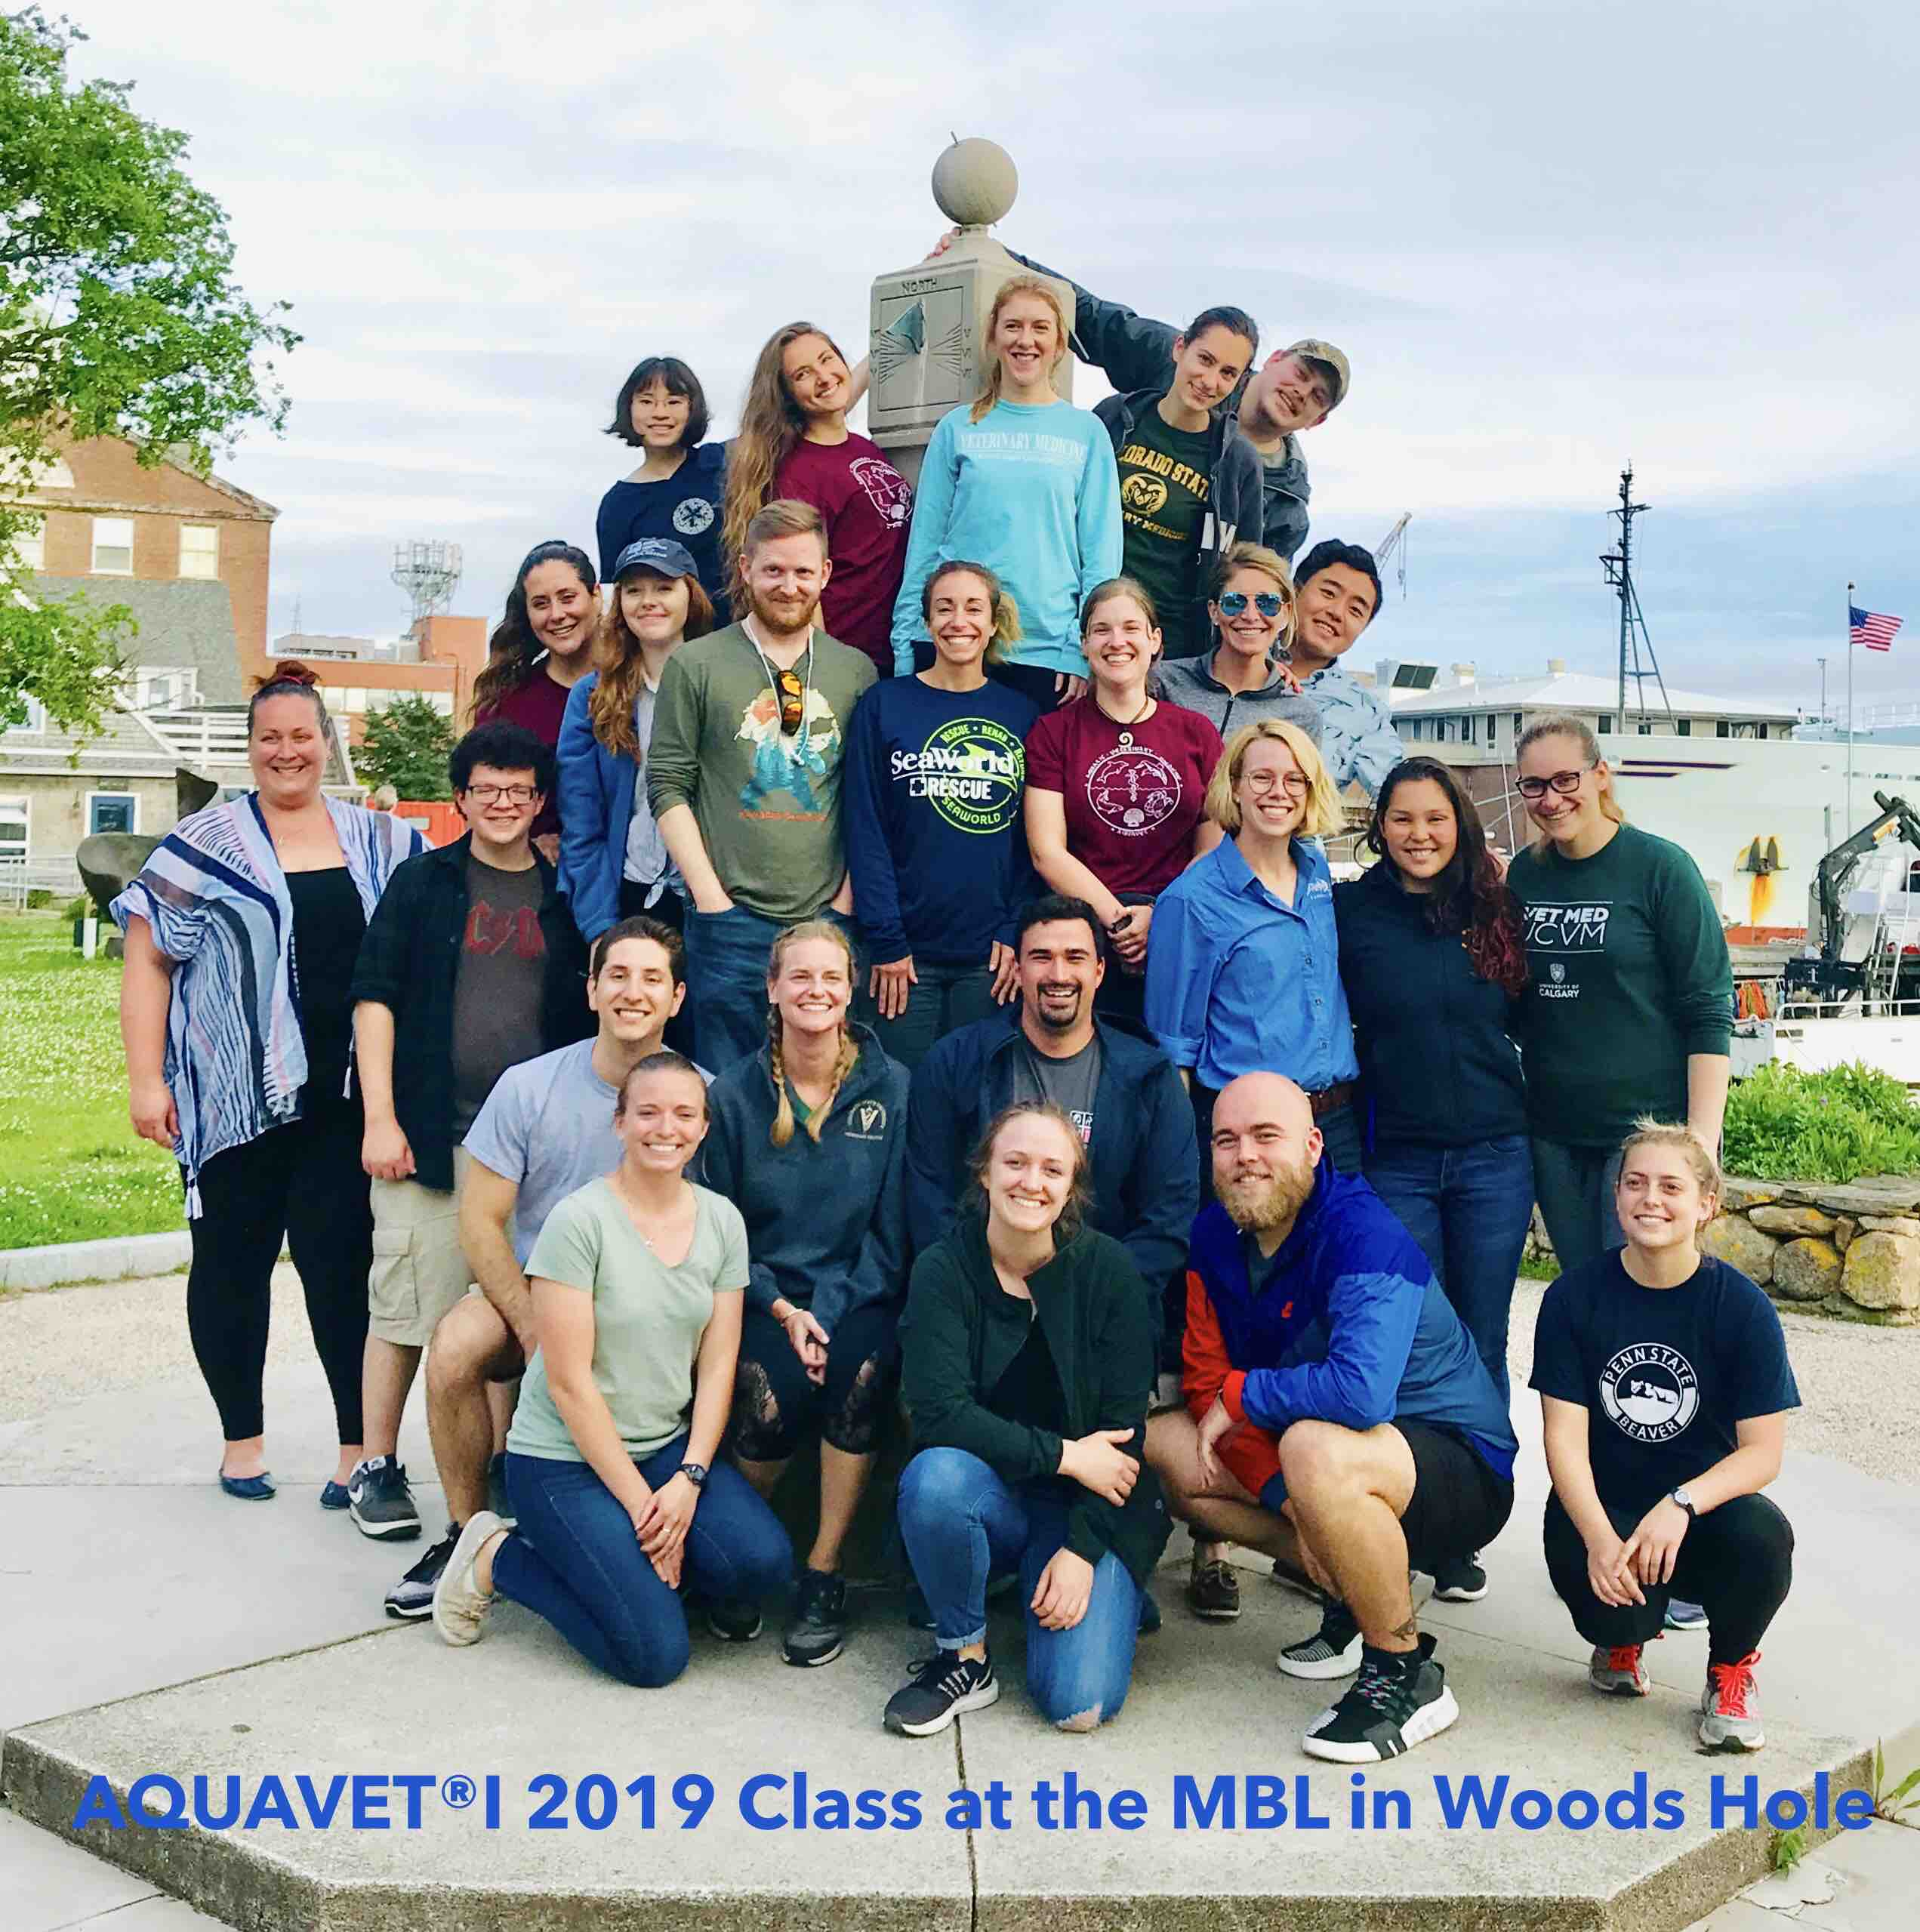 Aquavet I 2019 Class at the MBL in Woods Hole Picture